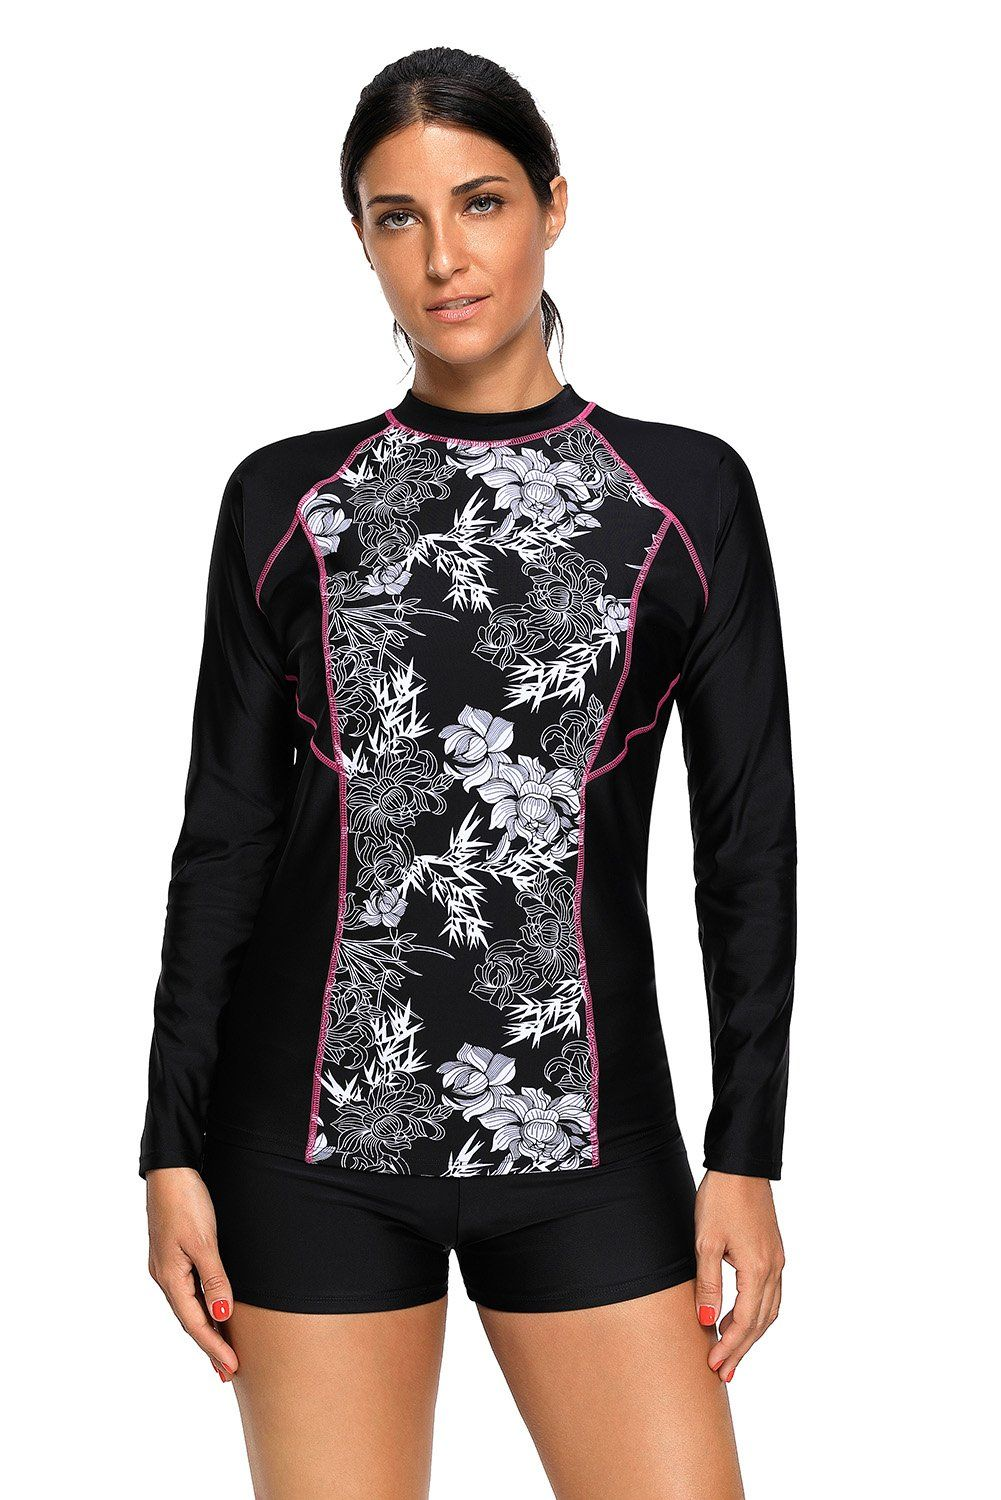 1b3e5a99461a3 High Neck Long Sleeve Rashguard Surfing Diving Swimwear